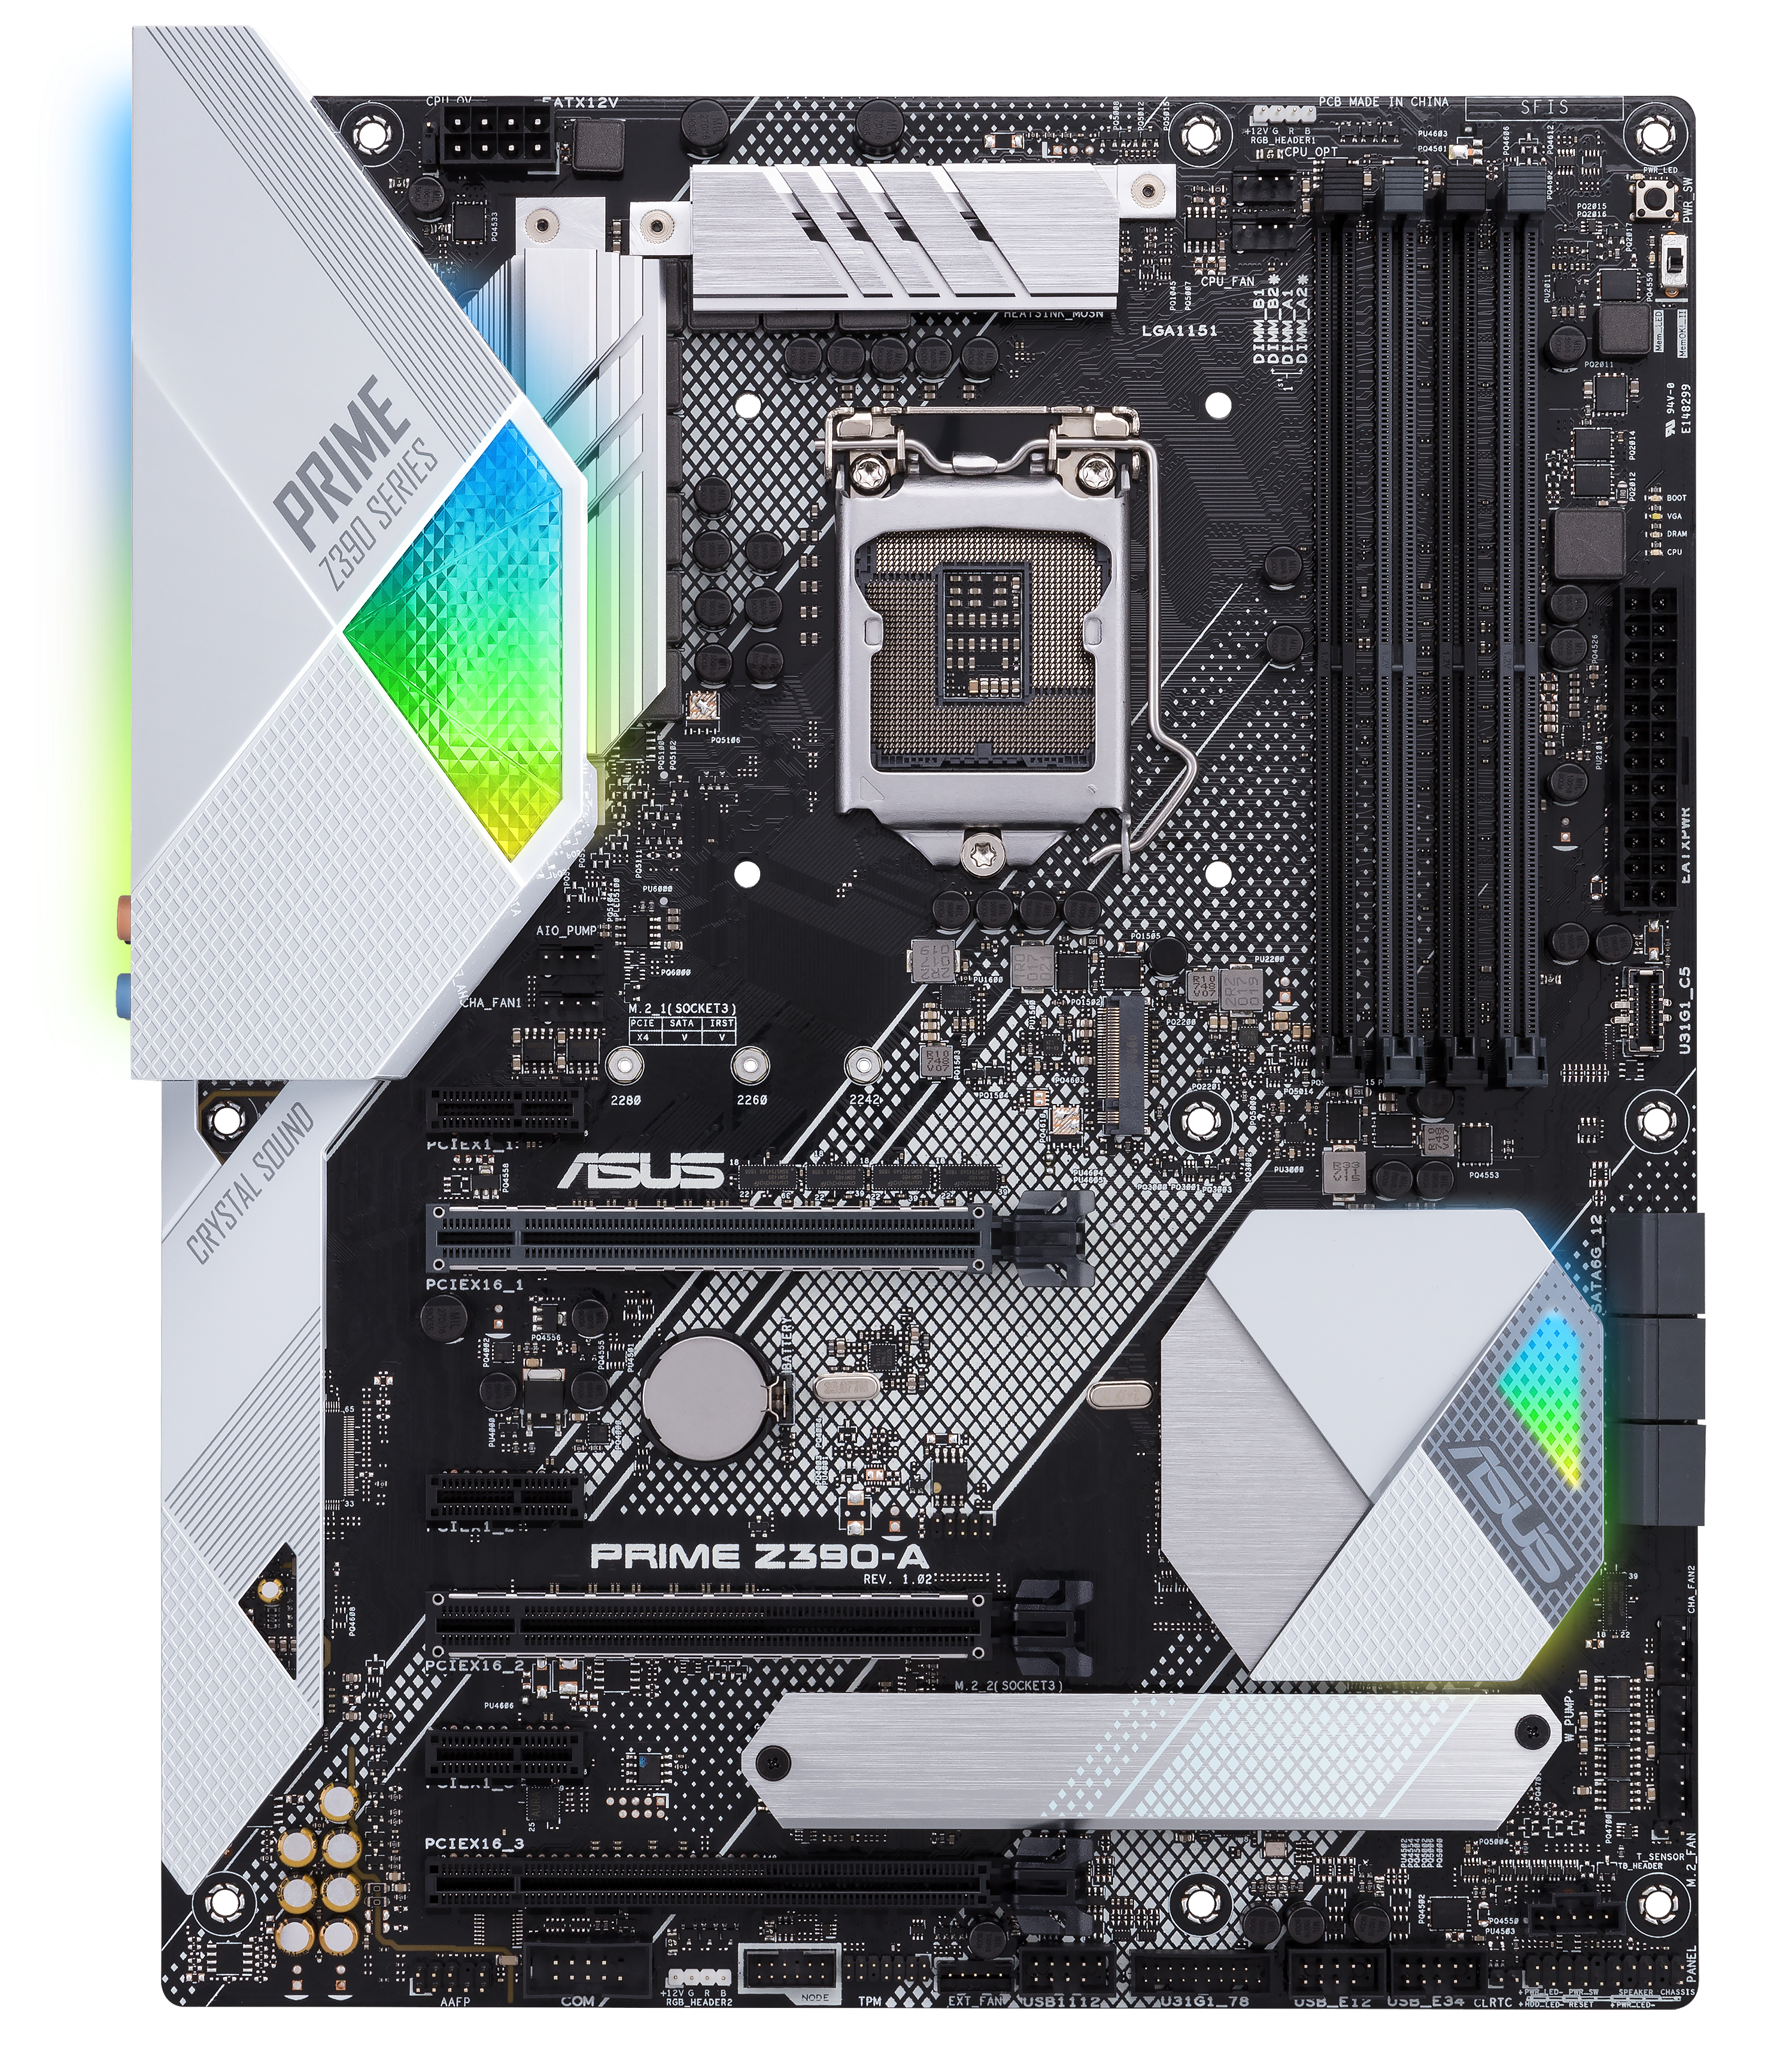 ASUS Prime Z390-A - Intel Z390 Motherboard Overview: 50+